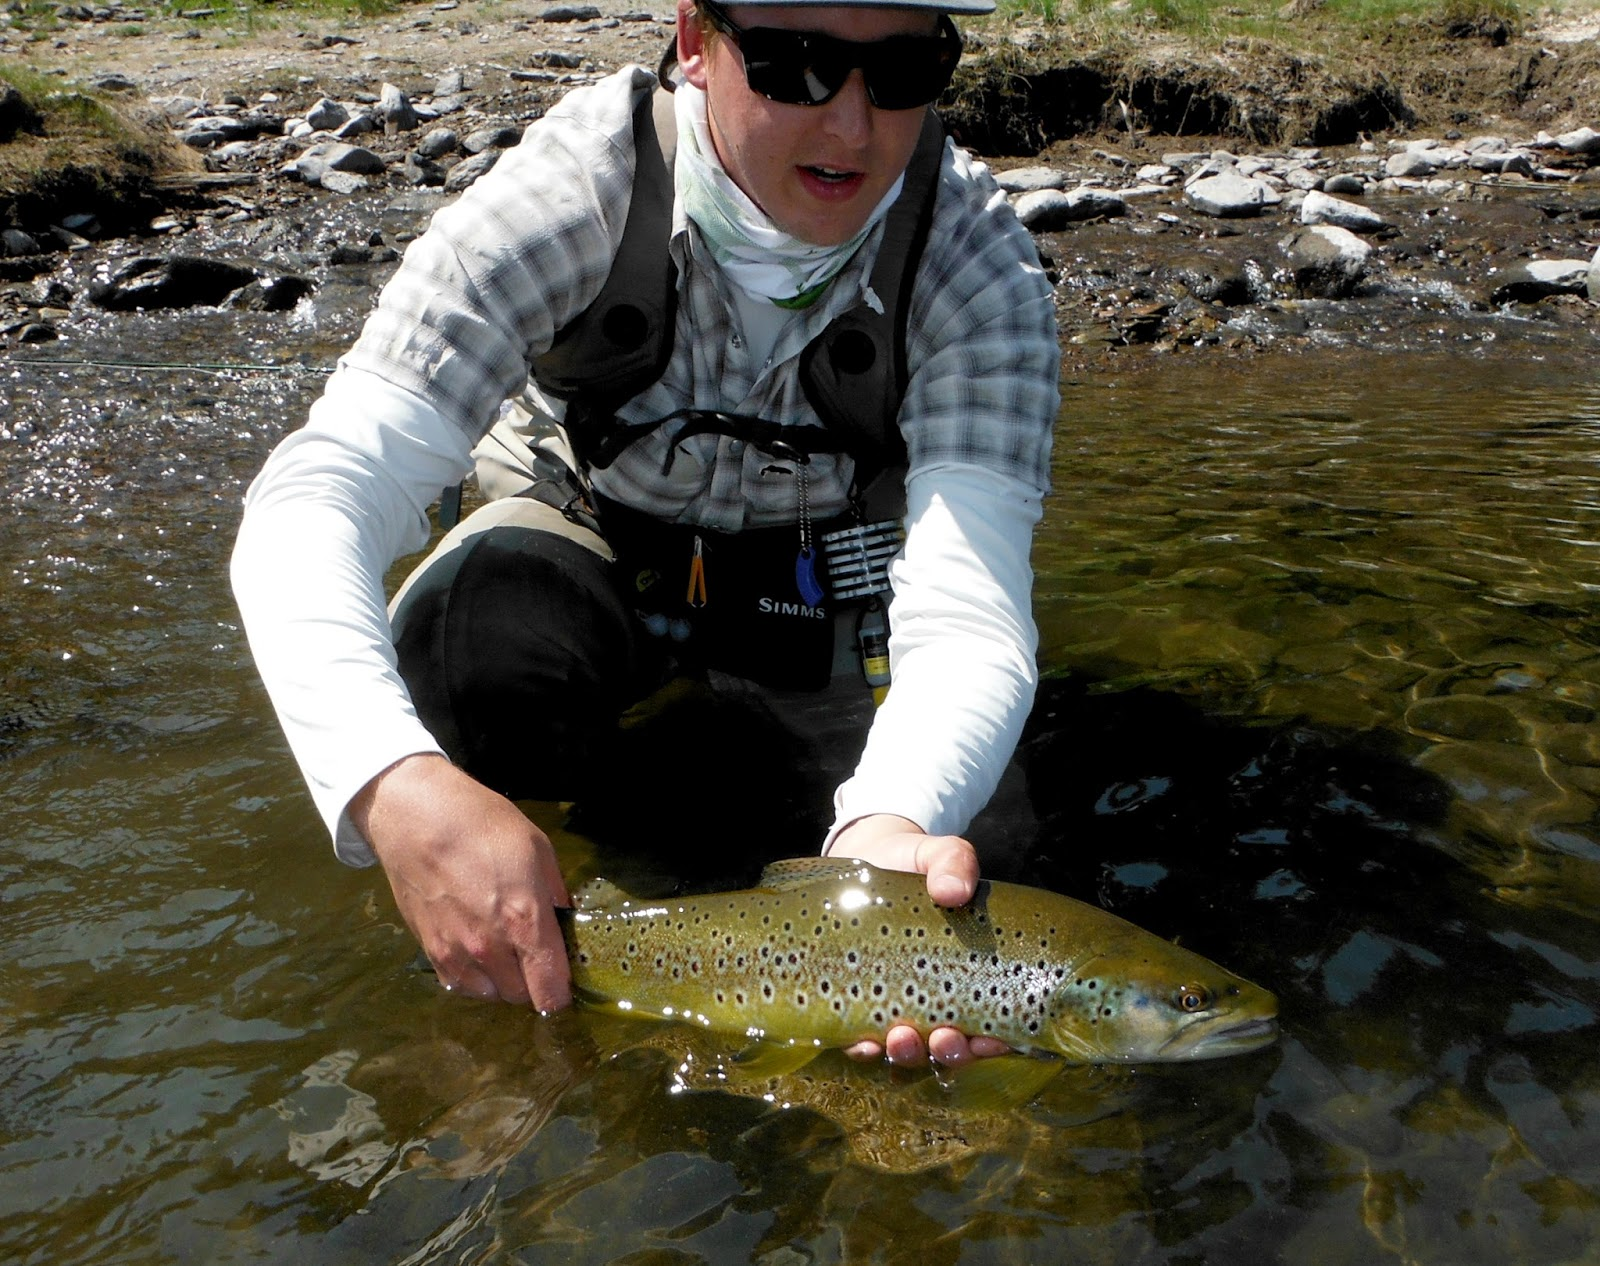 Skinny waders a fly fishing blog power fishing trip for Central oregon fishing report